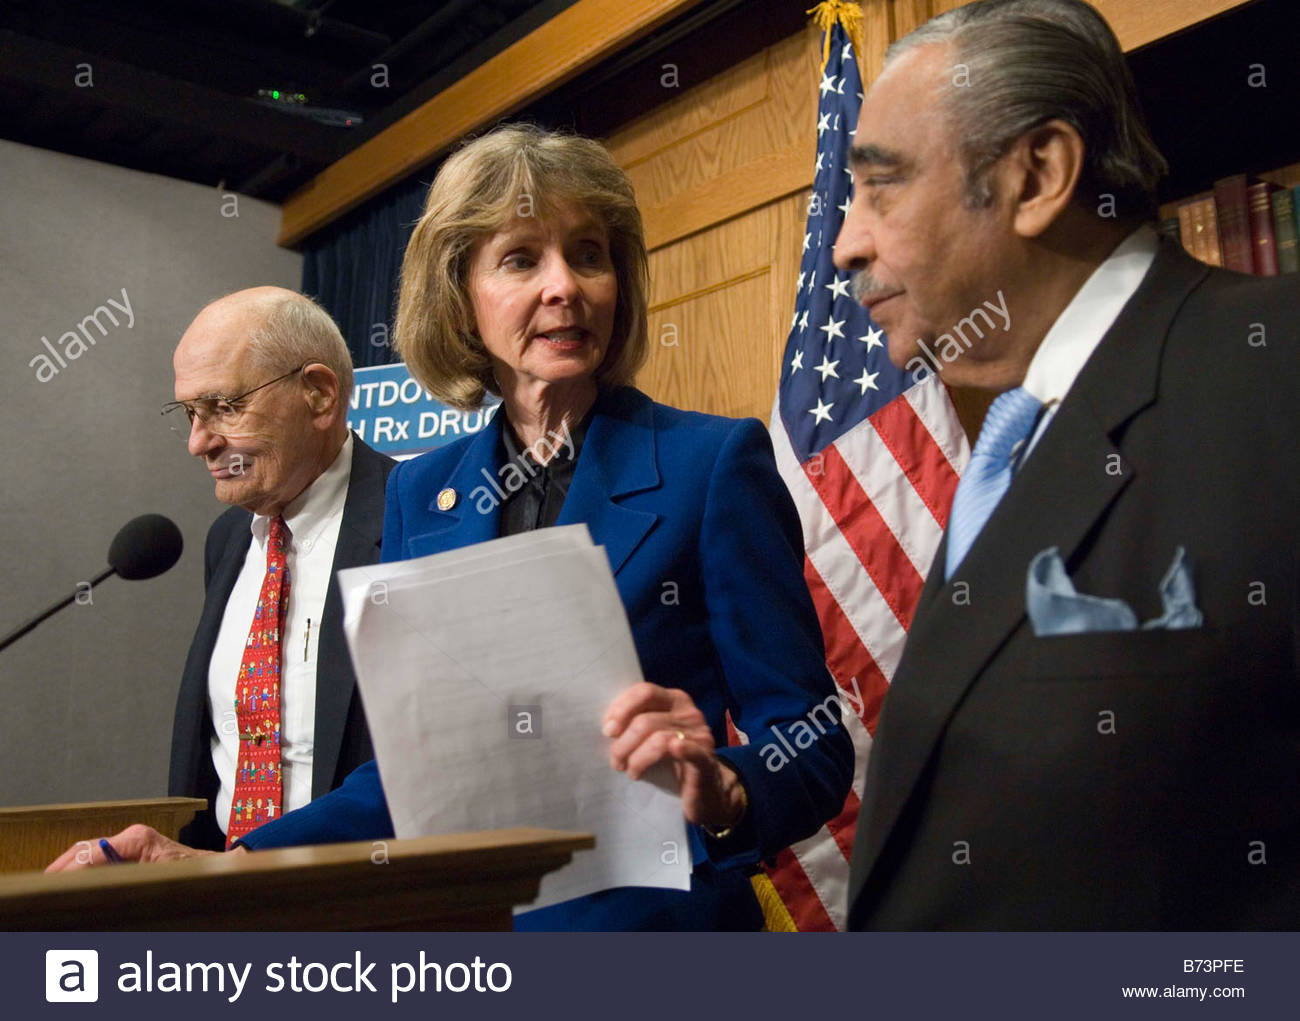 04 06 06 House Energy And Commerce Ranking Democrat John D Dingell D Mich  Rep Lois Capps D Calif And House Ways And Means Rankin